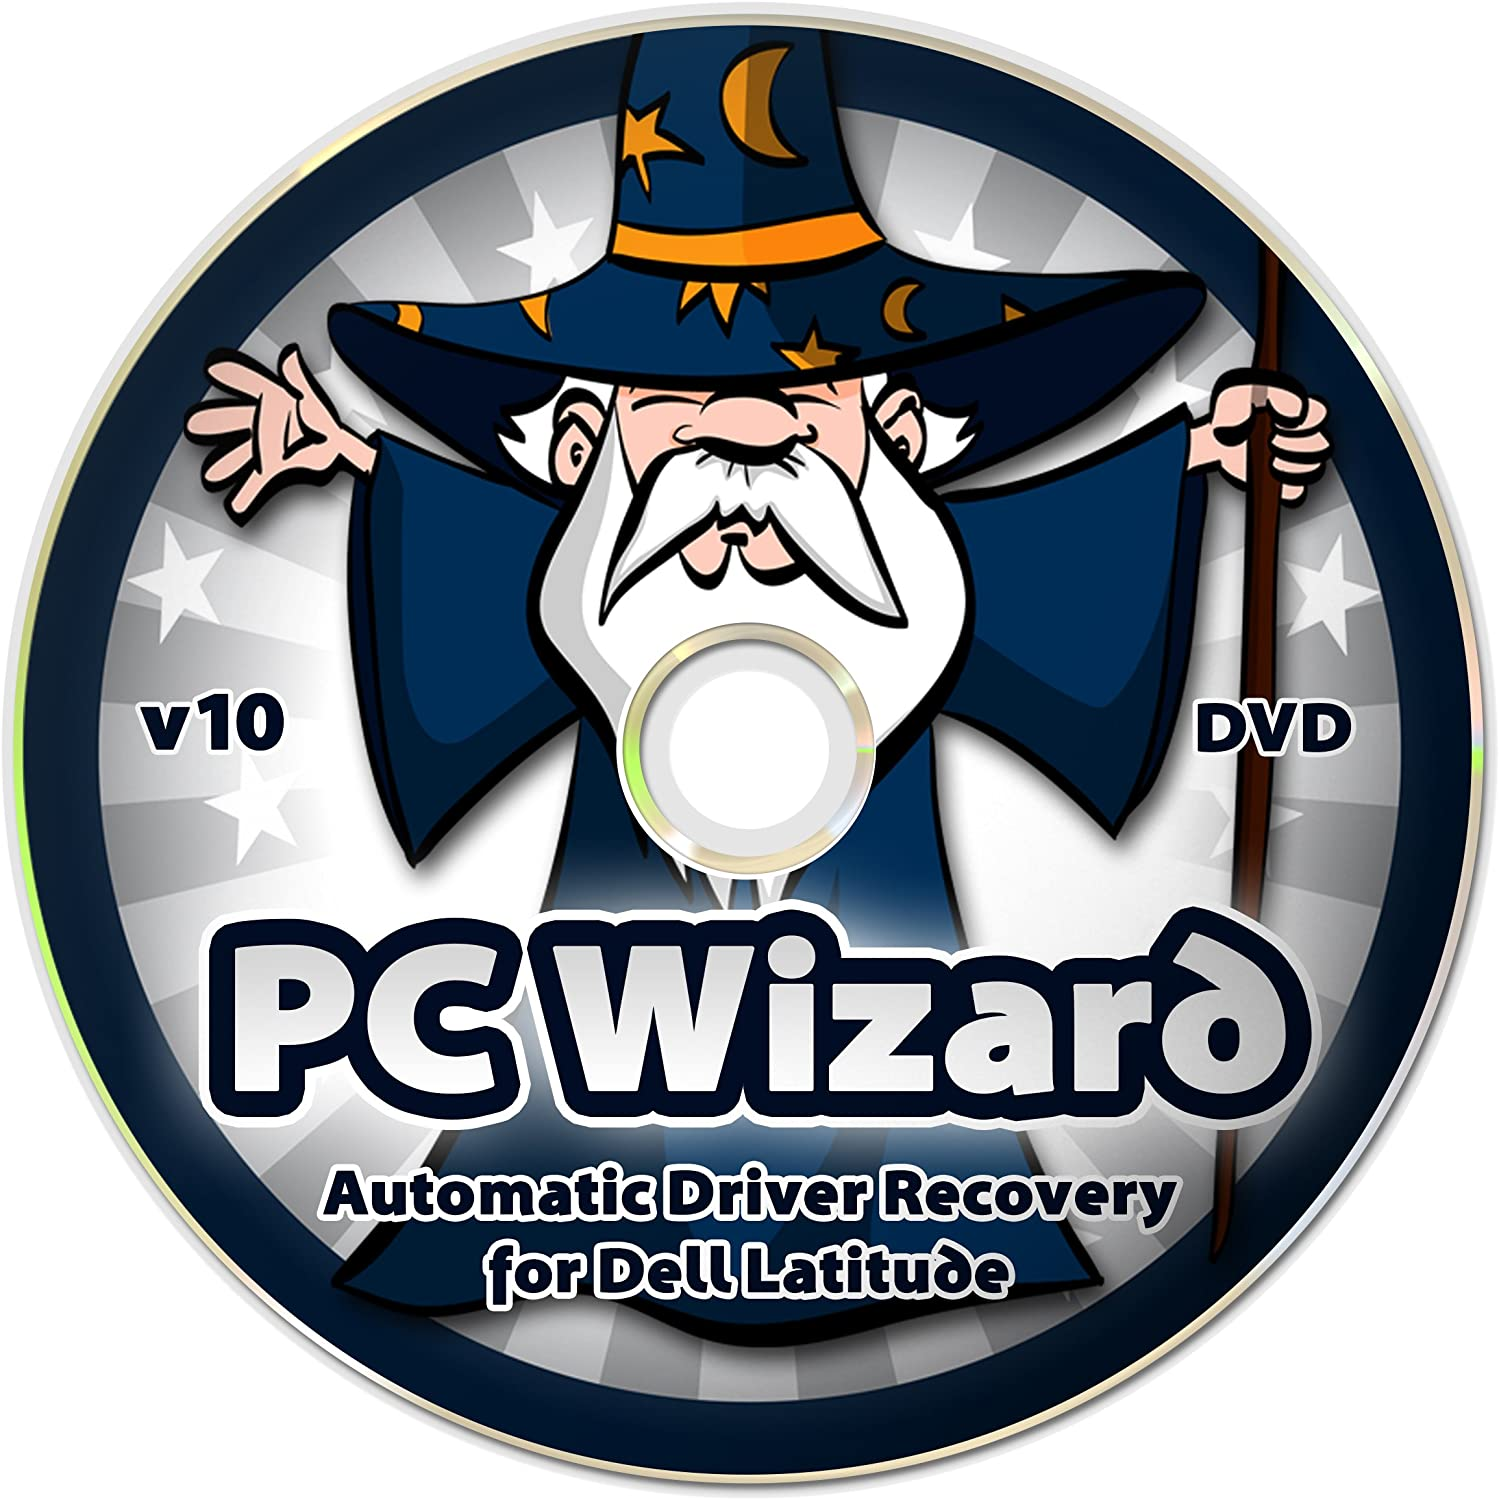 PC Wizard - Automatic Drivers Recovery Restore Update for Dell Latitude Laptops on DVD Disc - Supports Windows 10, 8.1, 7, Vista, XP (32-bit & 64-bit) - Supports All Hardware Devices